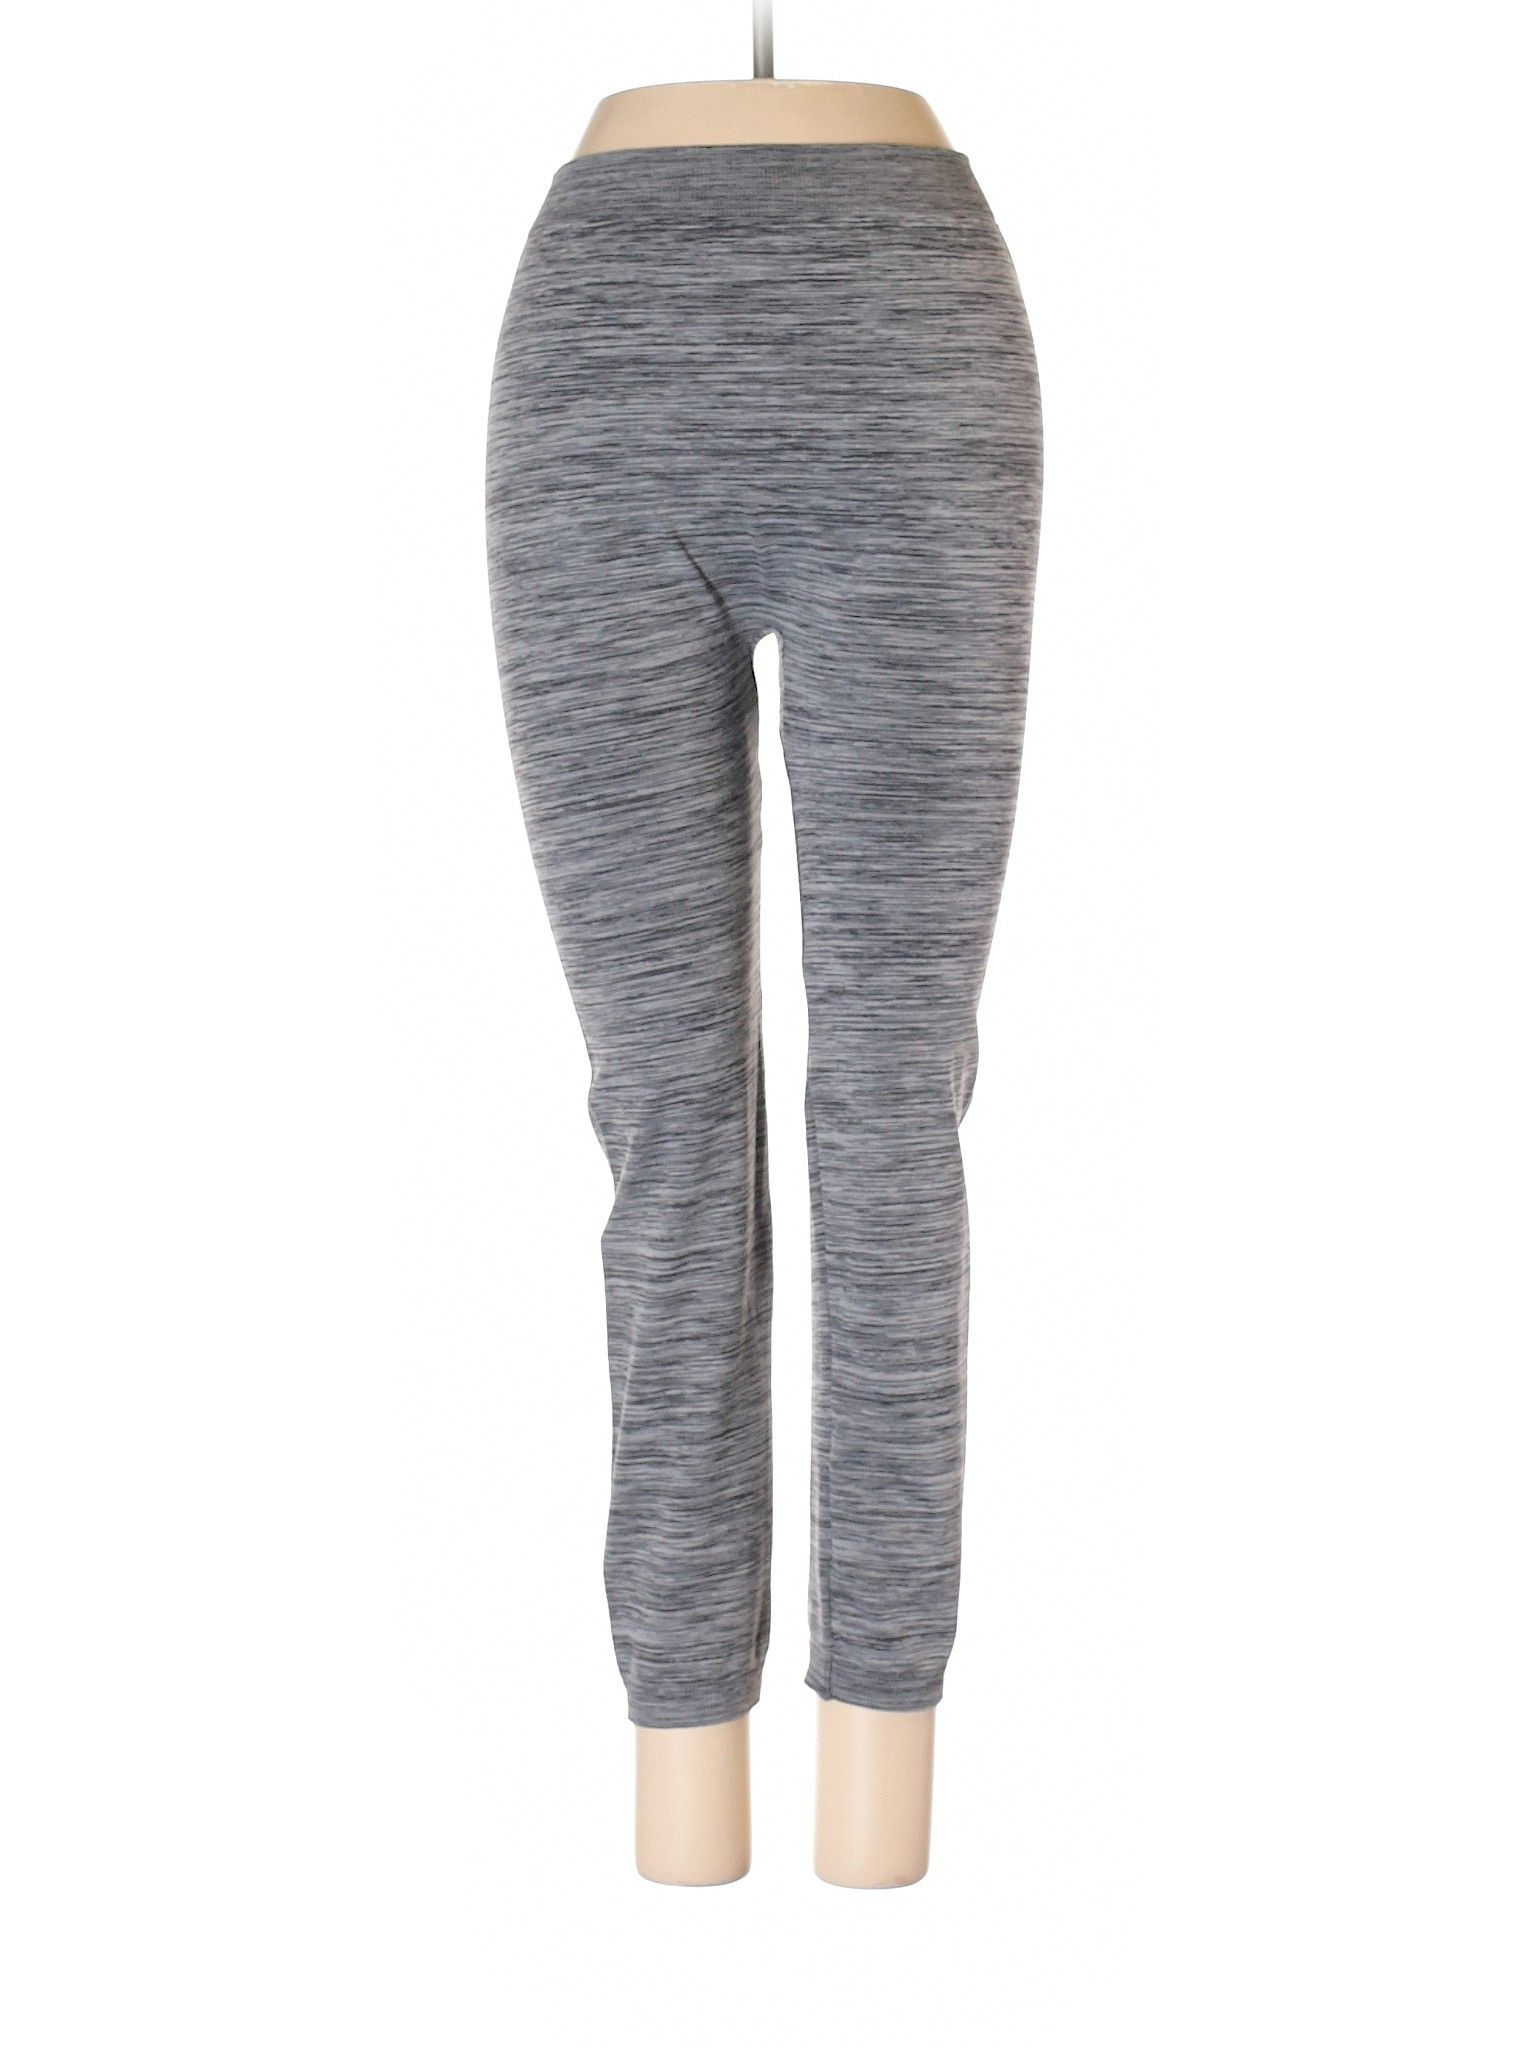 77d0086df0a70d French Laundry Leggings: Size 4.00 Gray Women's Bottoms - $6.99